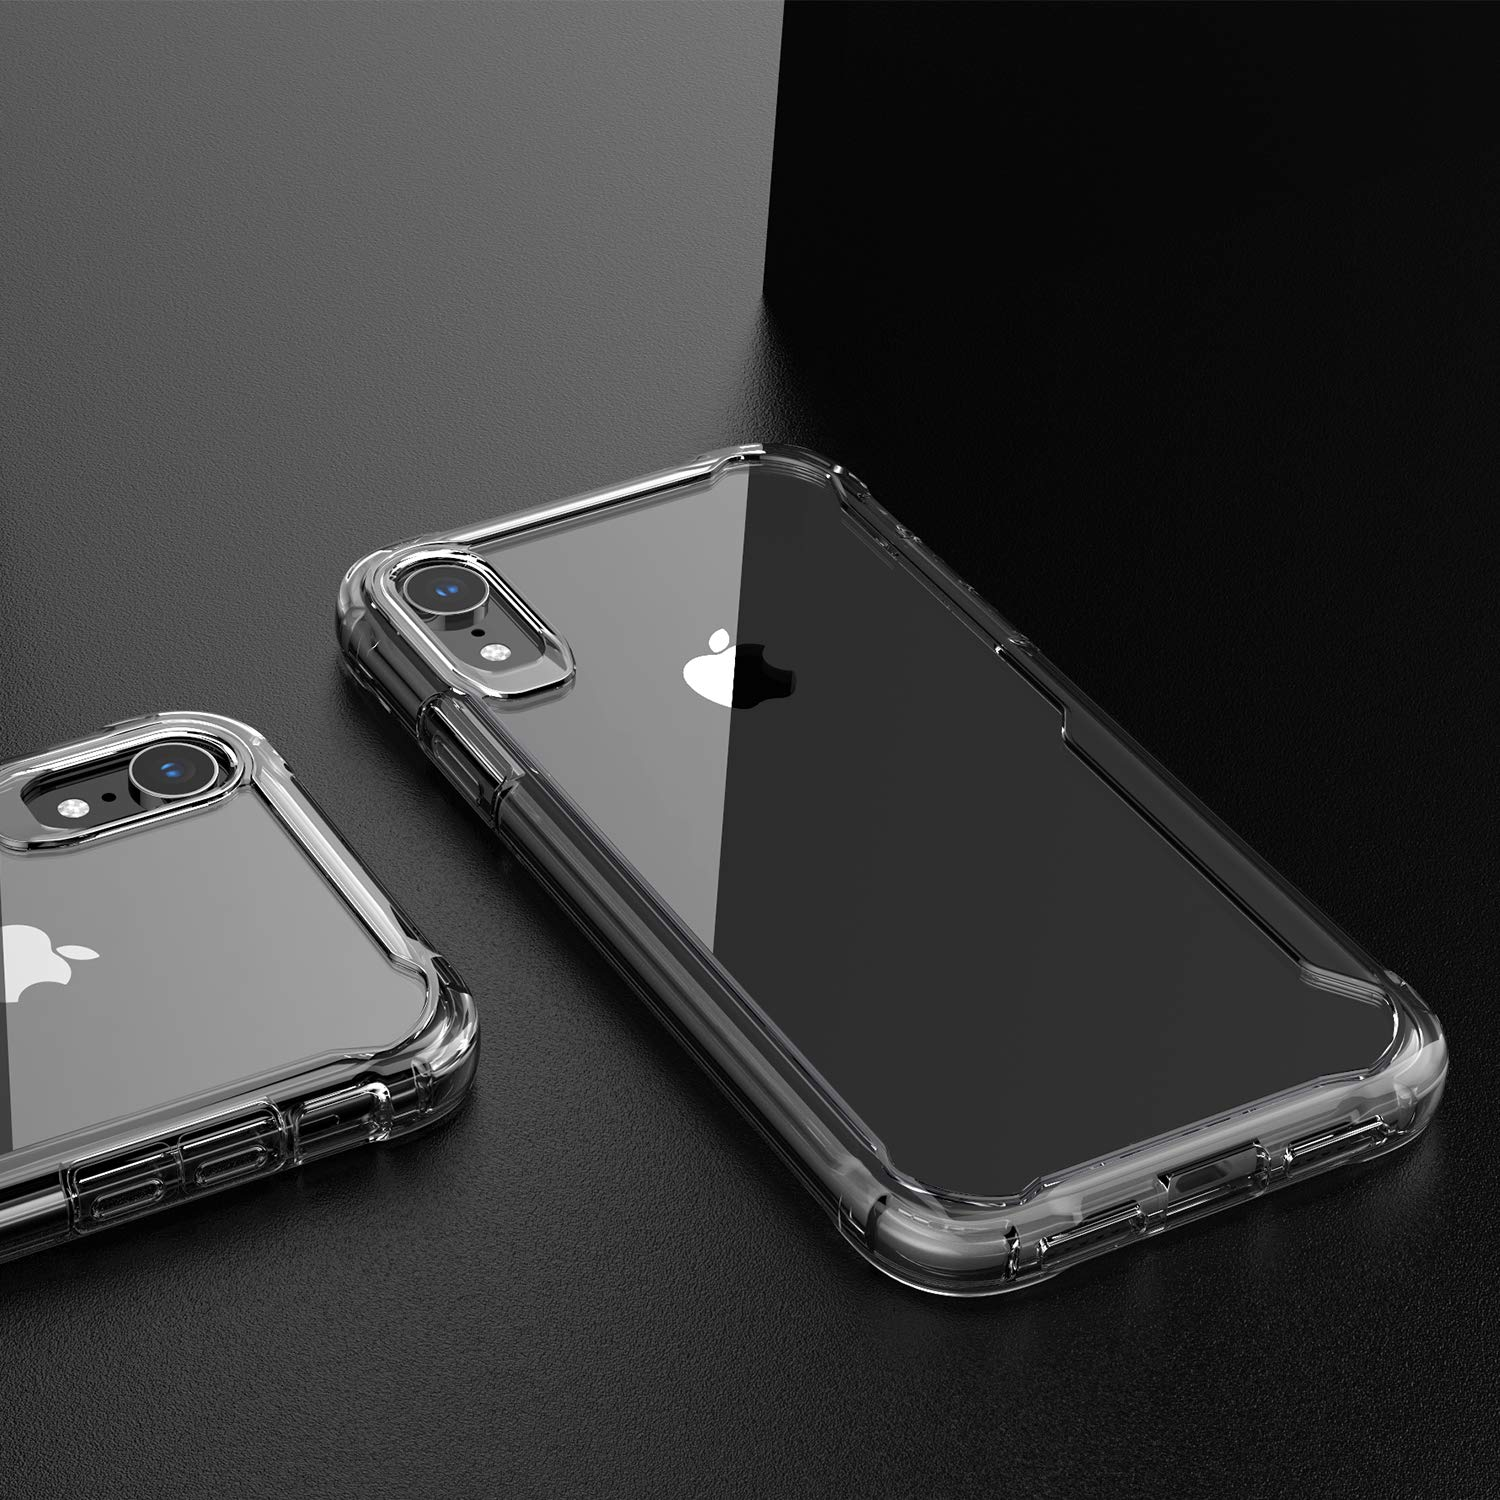 EFFENX iPhone XR Case - Clear Cover iPhone XR Shockproof Bumper with Air Cushion Protective case Soft and Slim (Clear Color) by EFFENX (Image #2)